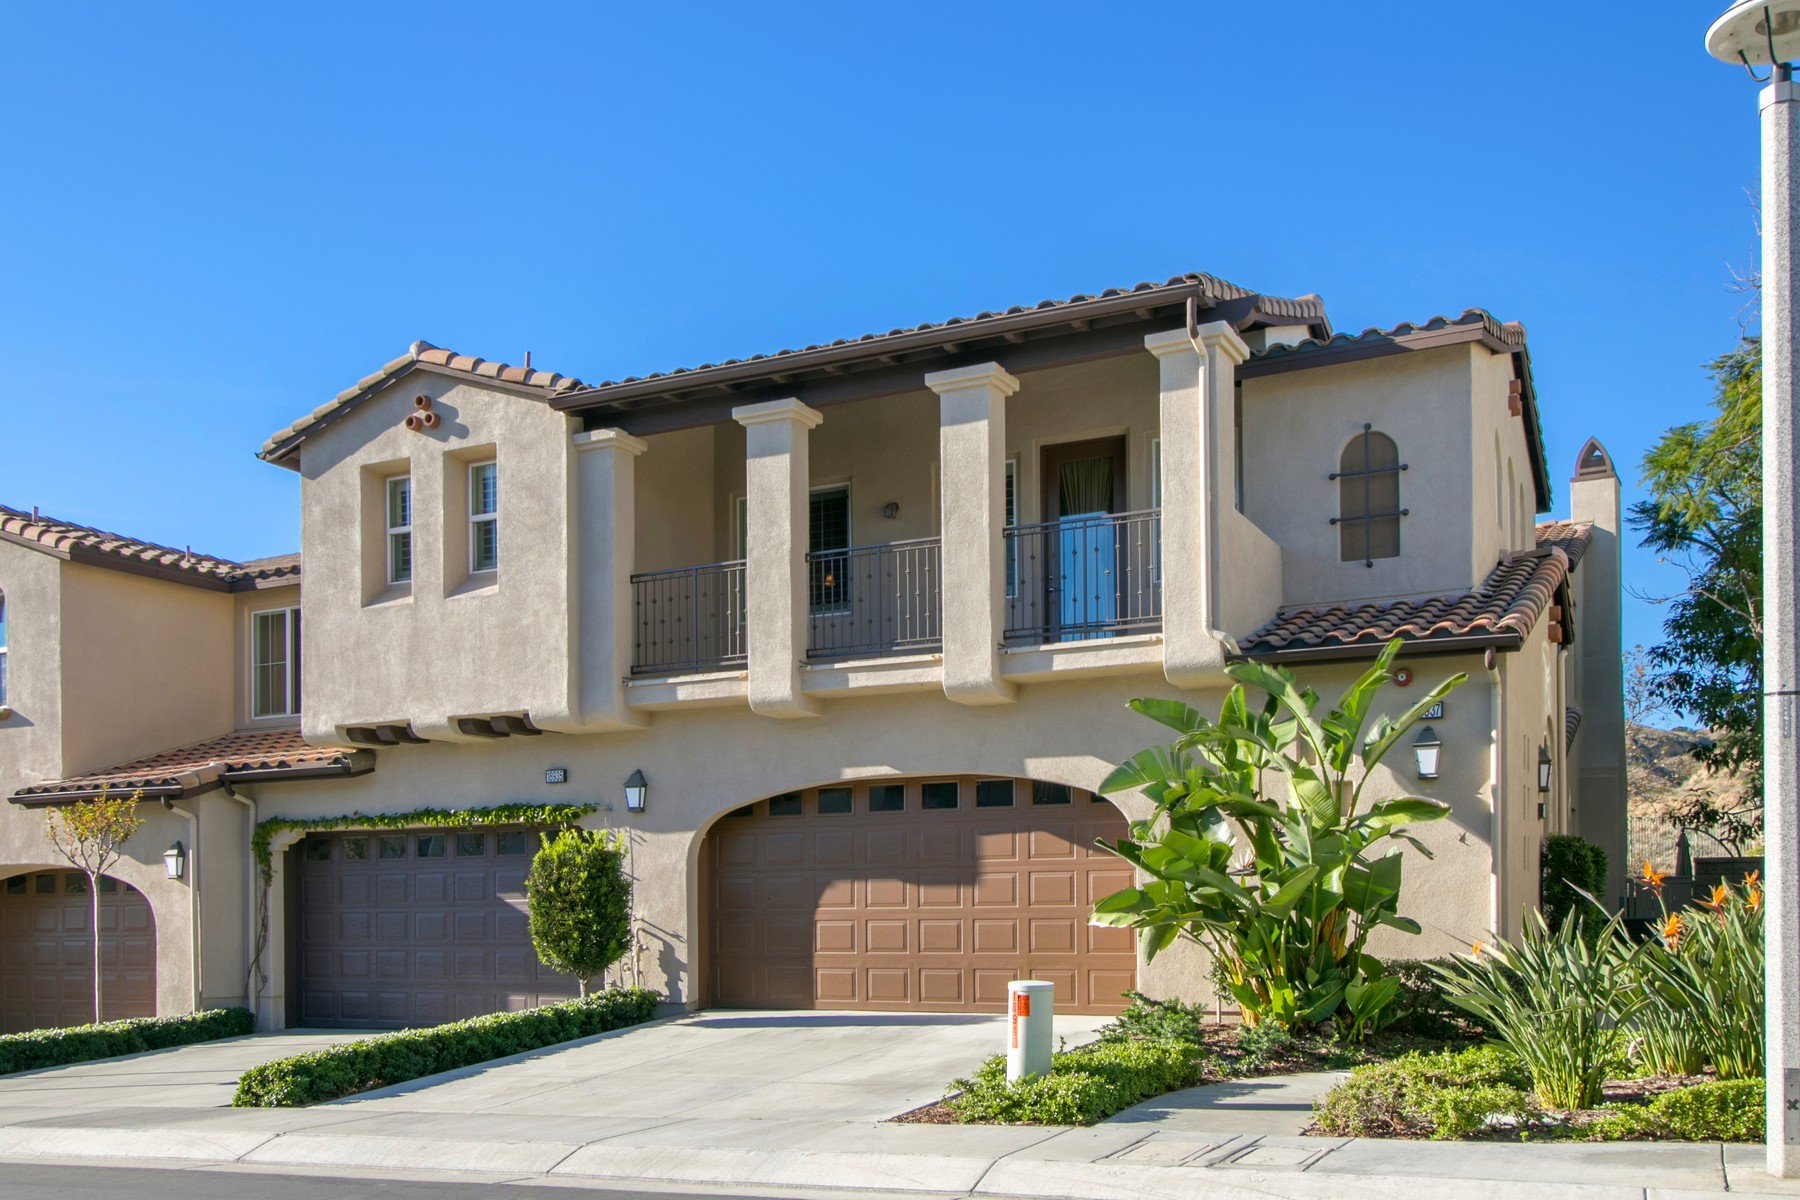 Single Family Home for Sale at 18937 Northern Dancer Ln. Yorba Linda, California, 92886 United States